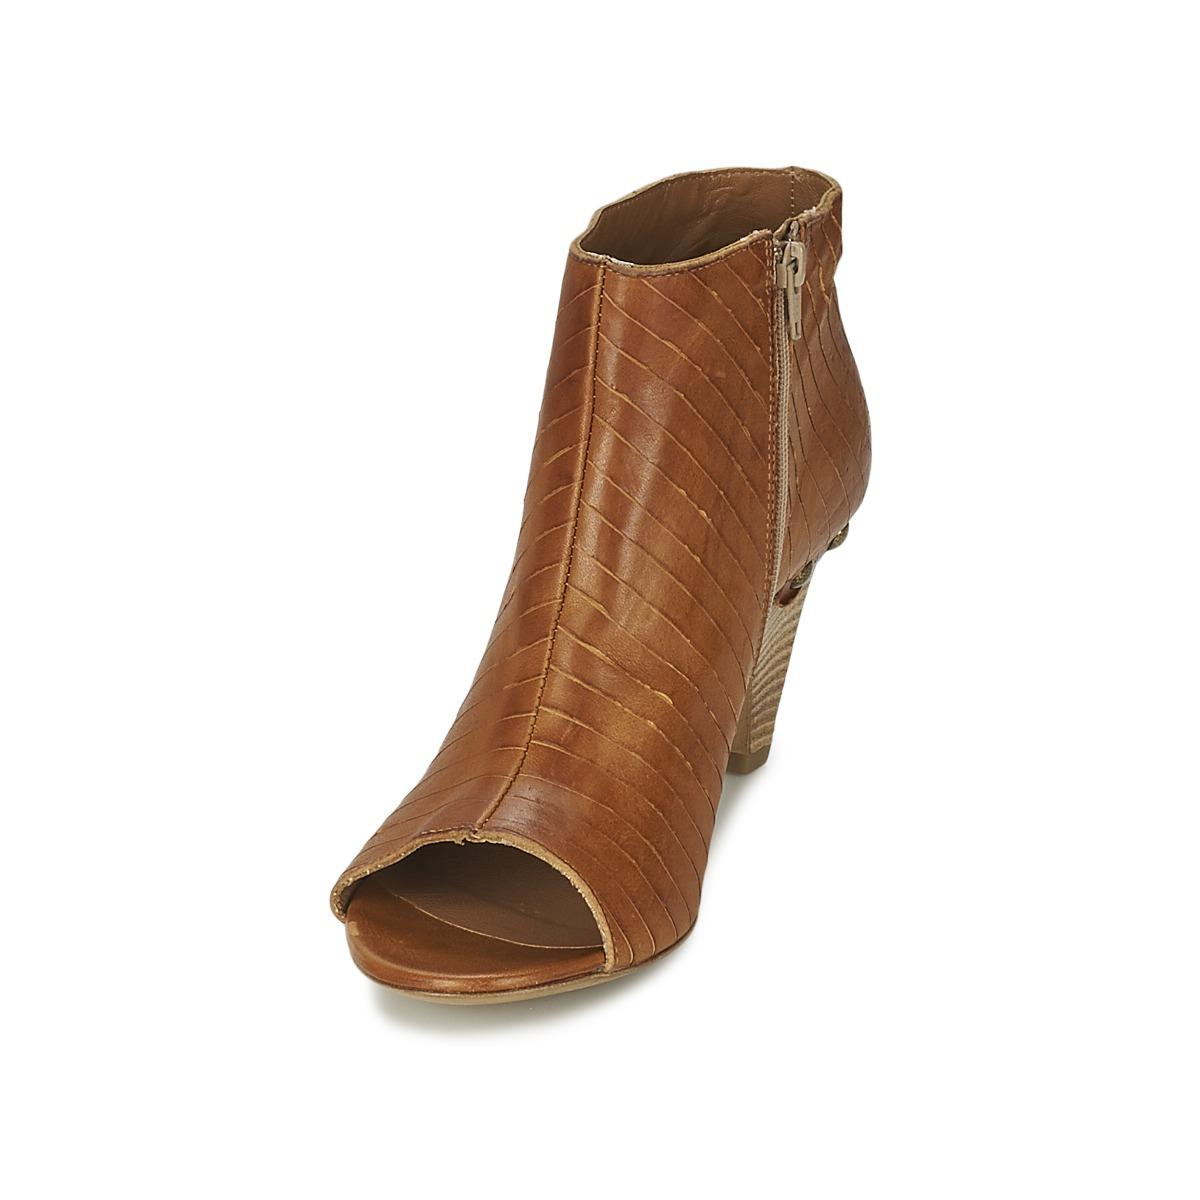 Vic Matié Leather Gonco Low Boots in Brown - Save 10%